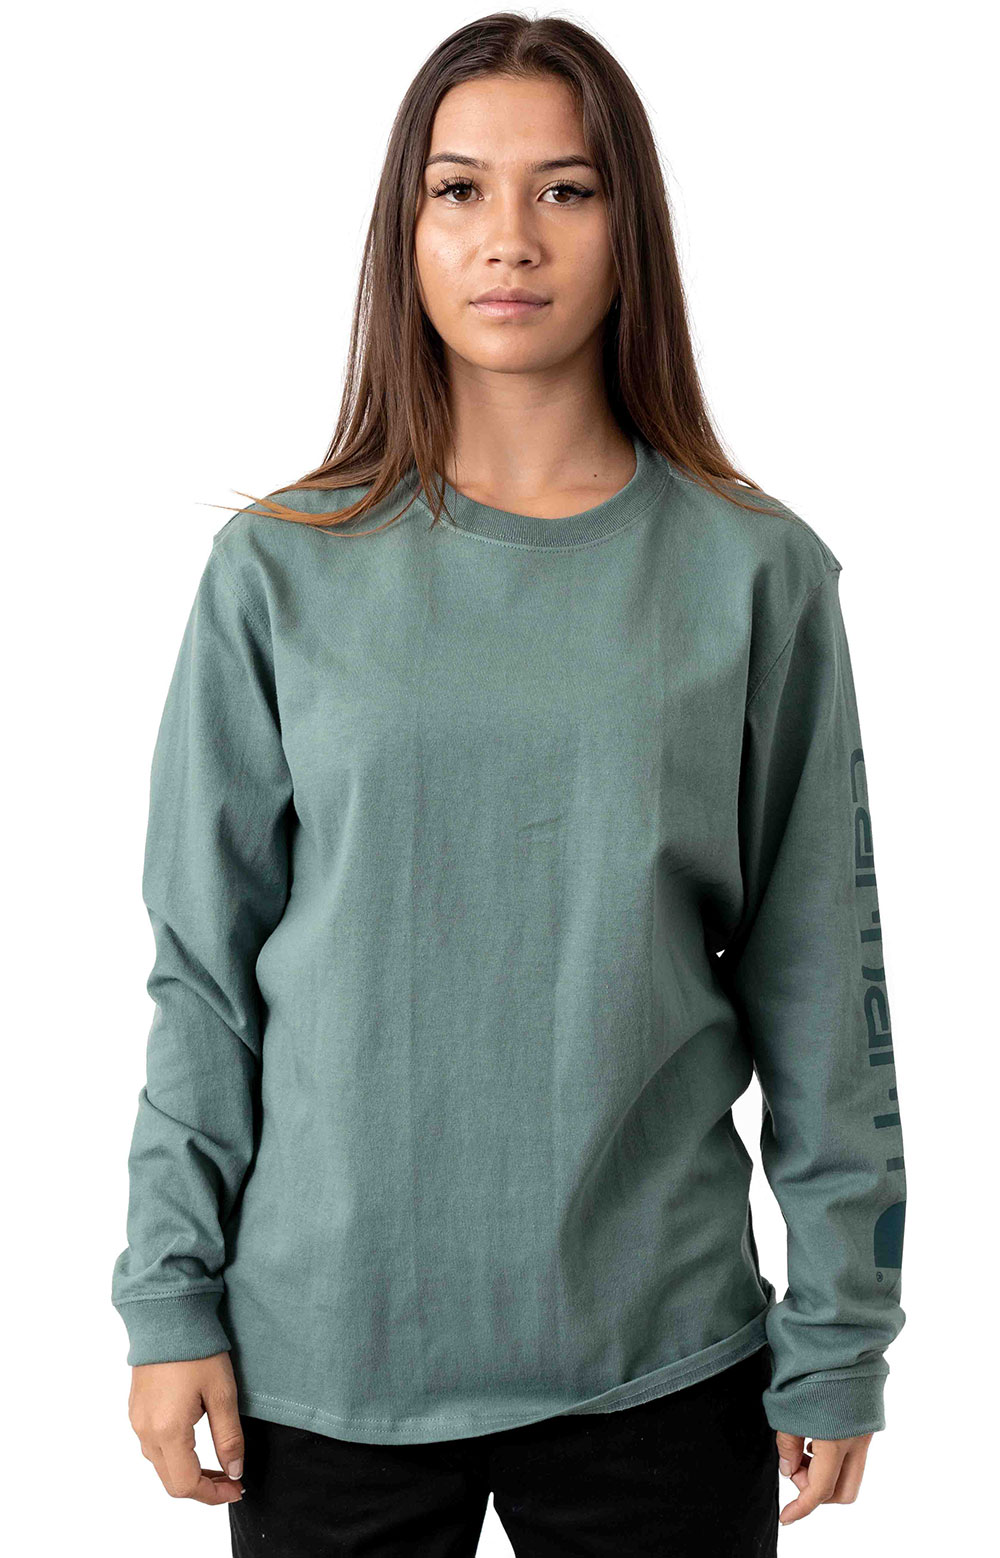 (103401) WK231 Workwear Sleeve Logo L/S Shirt - Balsam Green